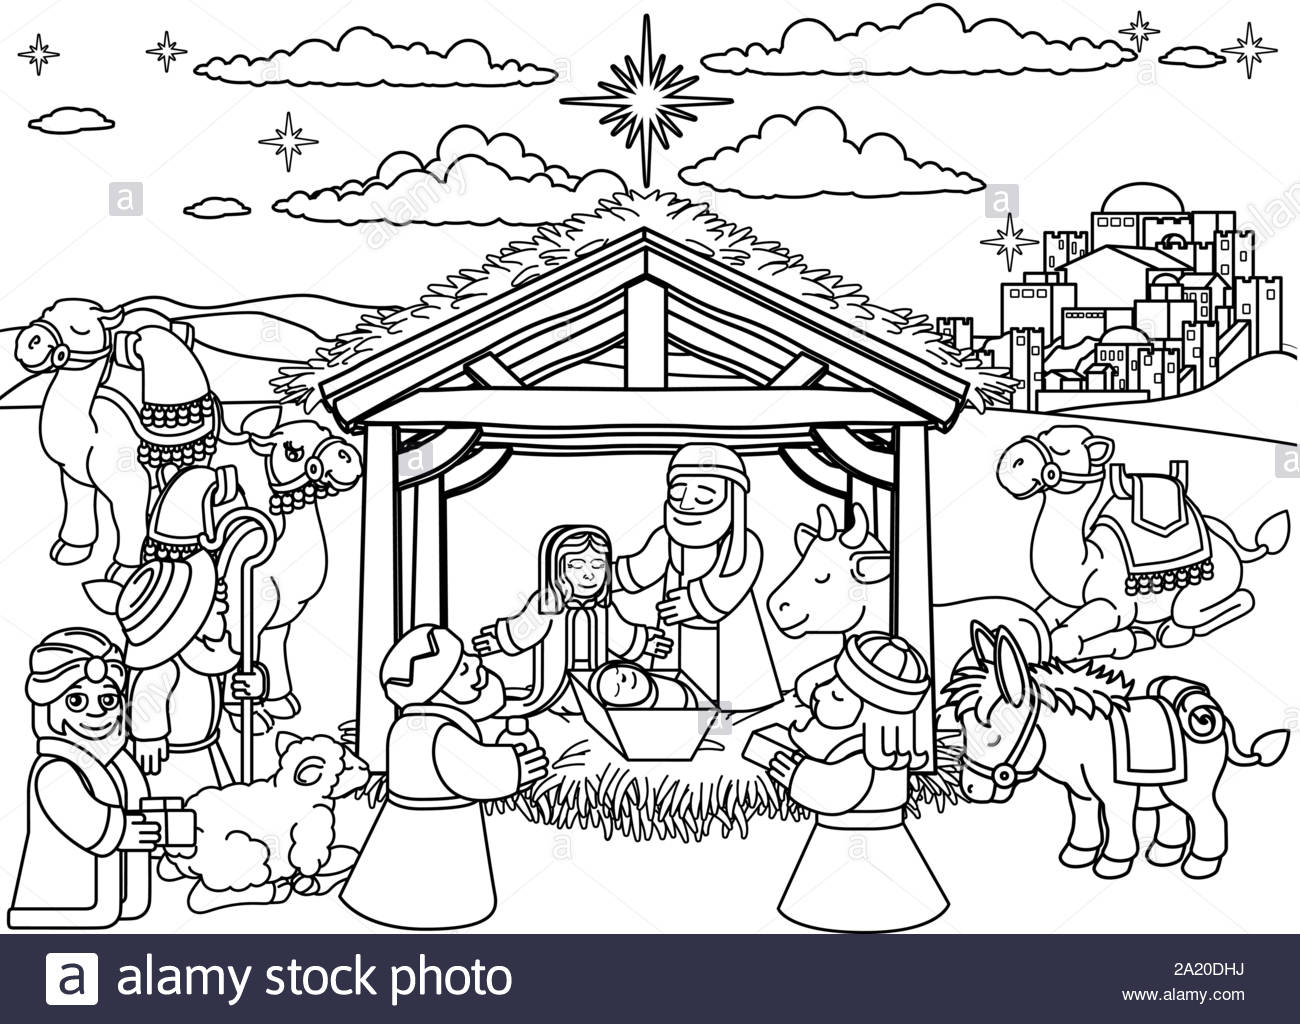 nativity scene christmas stock vector image art manger coloring 2a20dhj free pdf format coloring pages Manger Scene Coloring Page